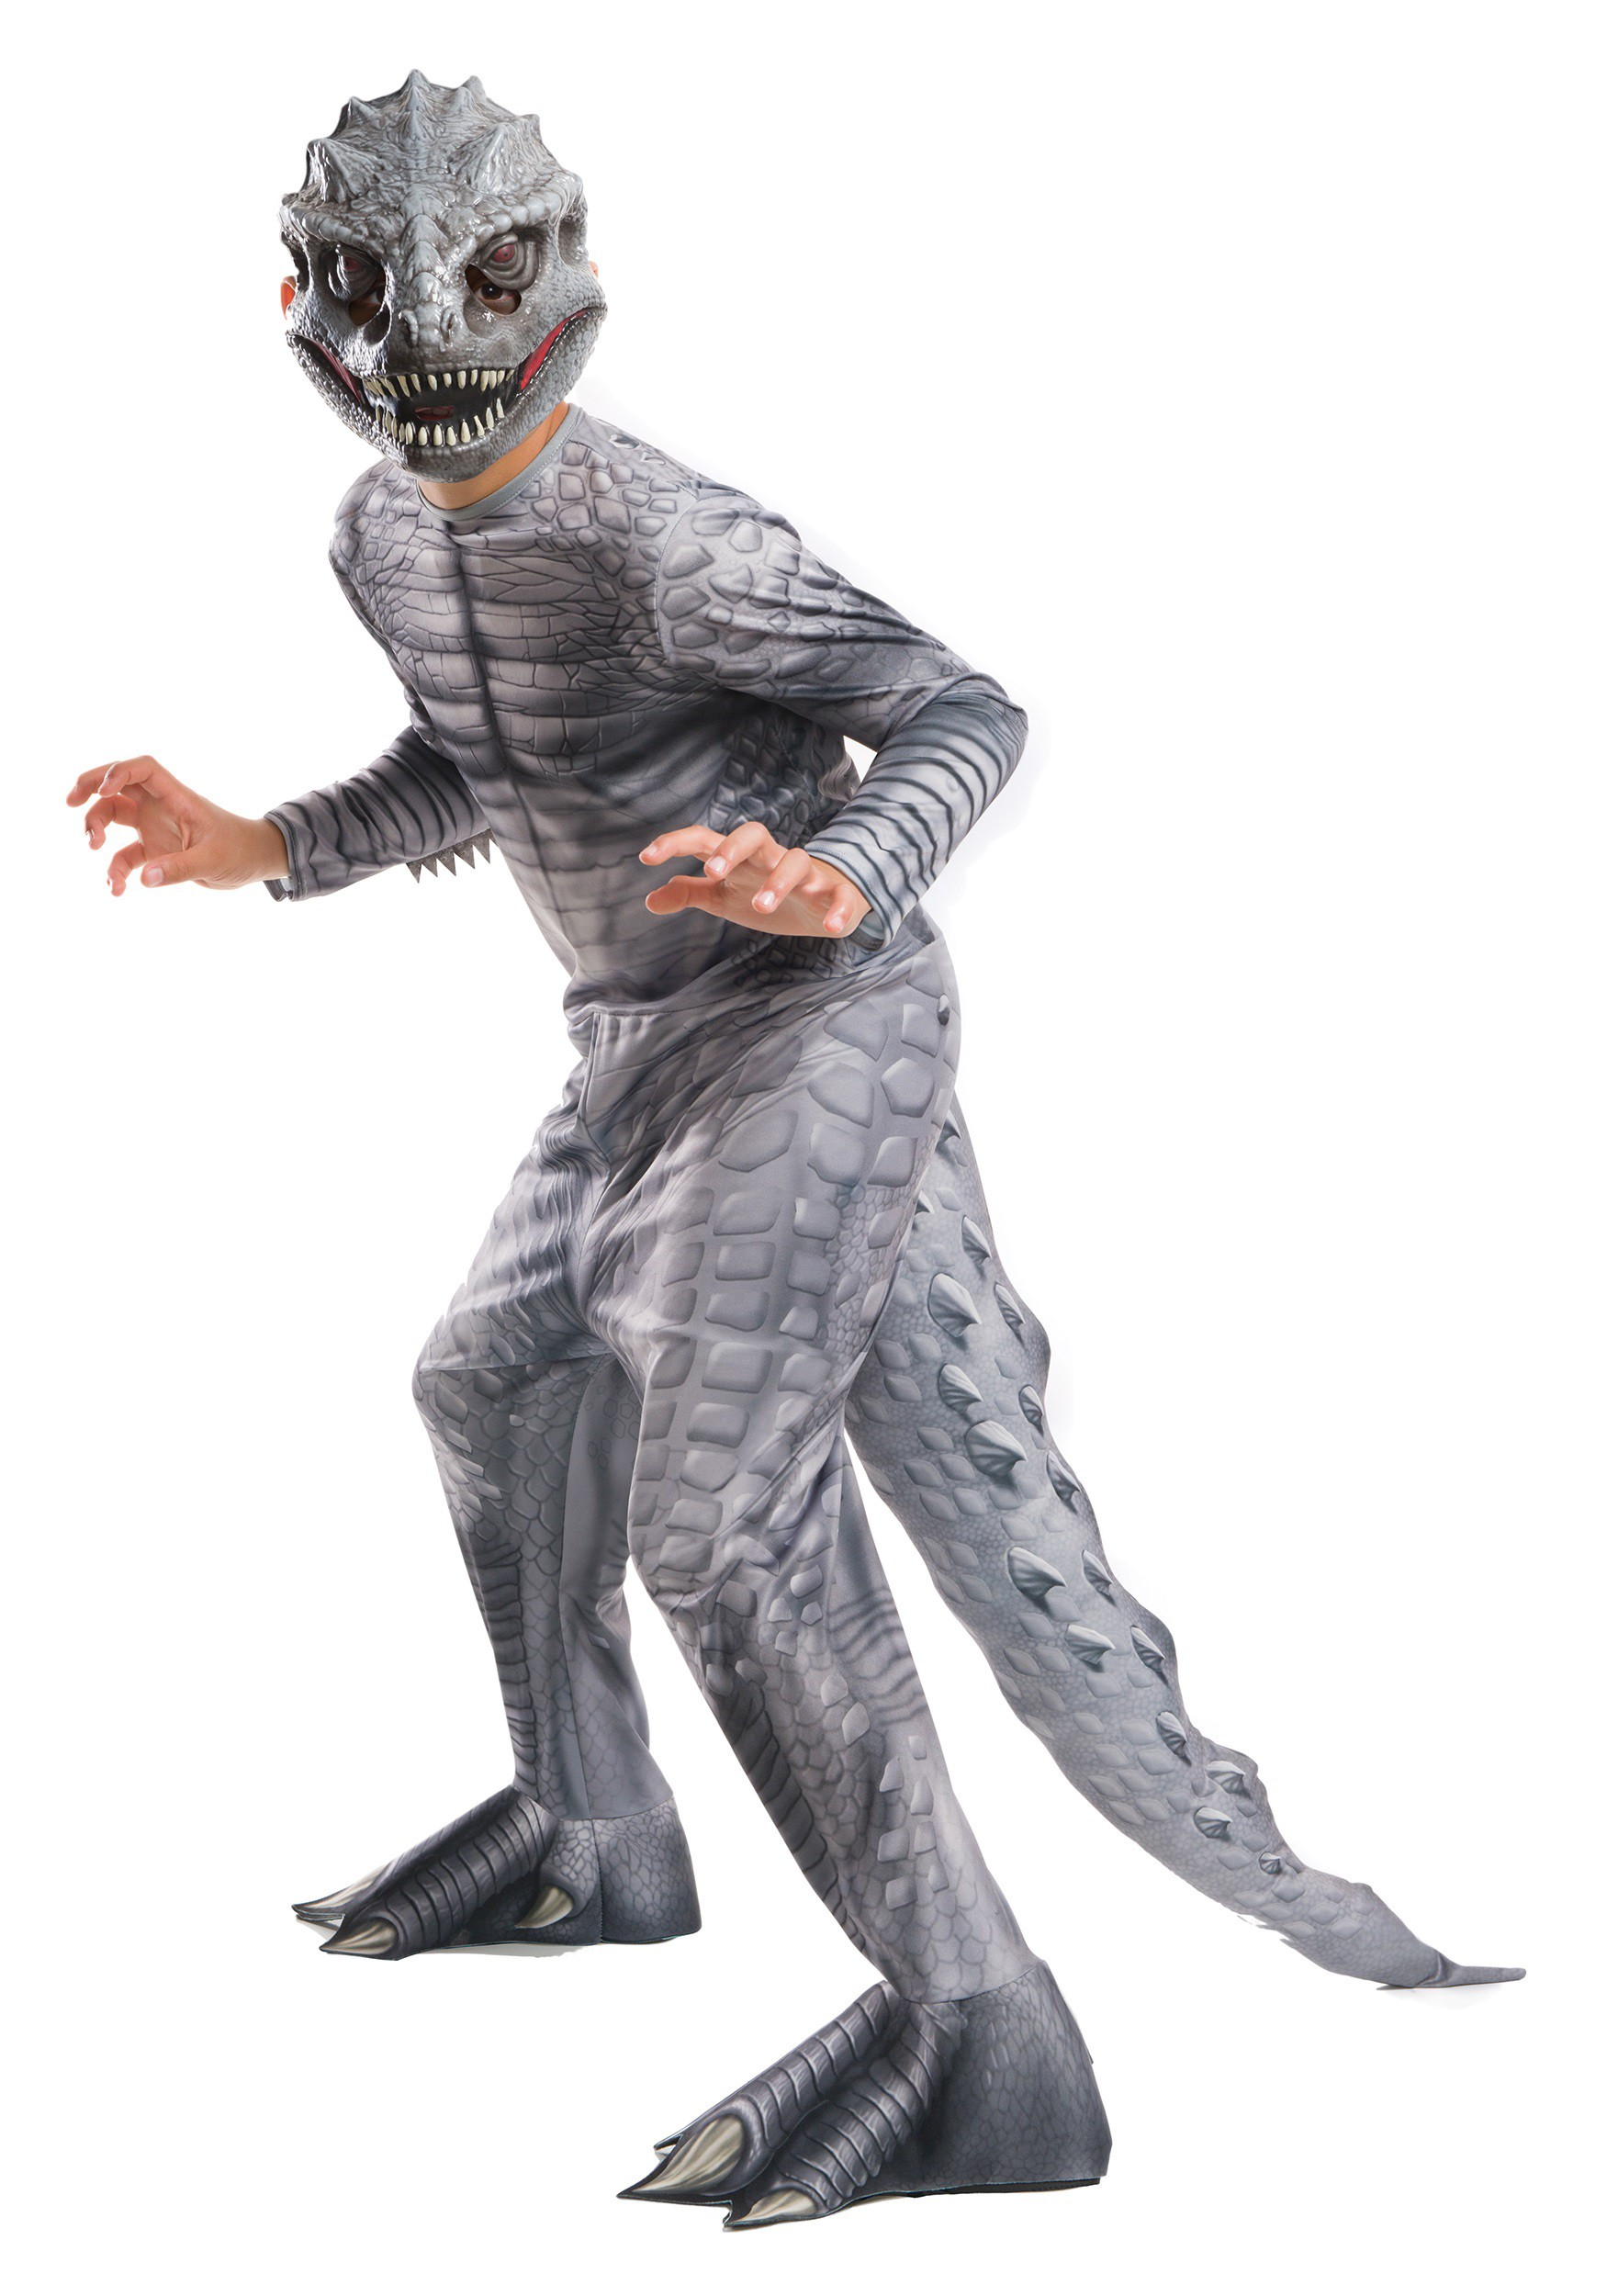 Child Jurassic World Dino Costume RU610816